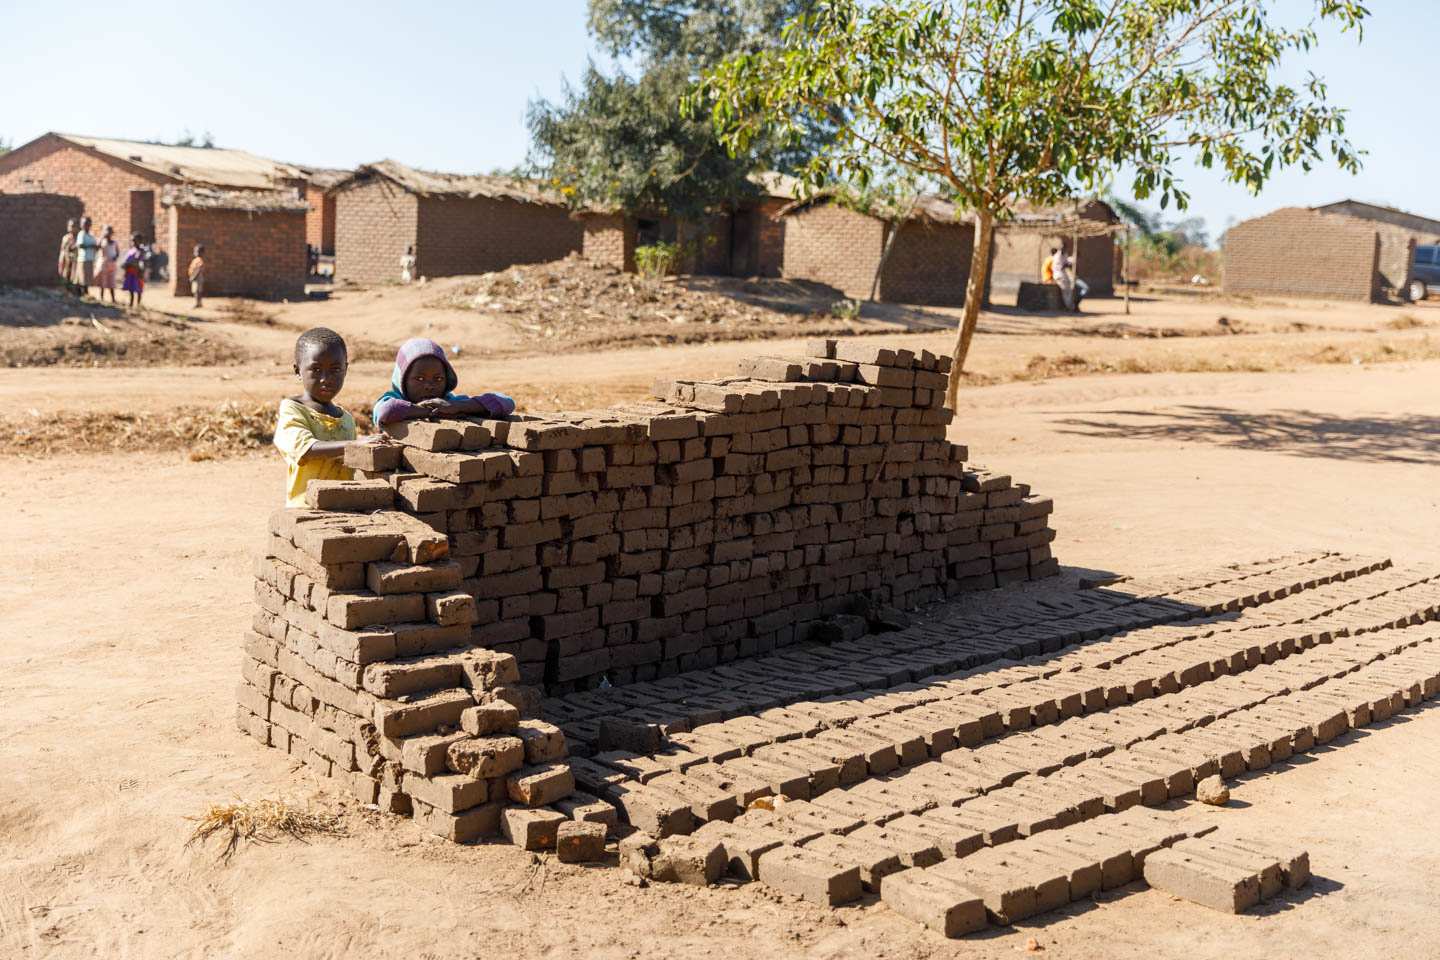 Sun baked bricks to build a home